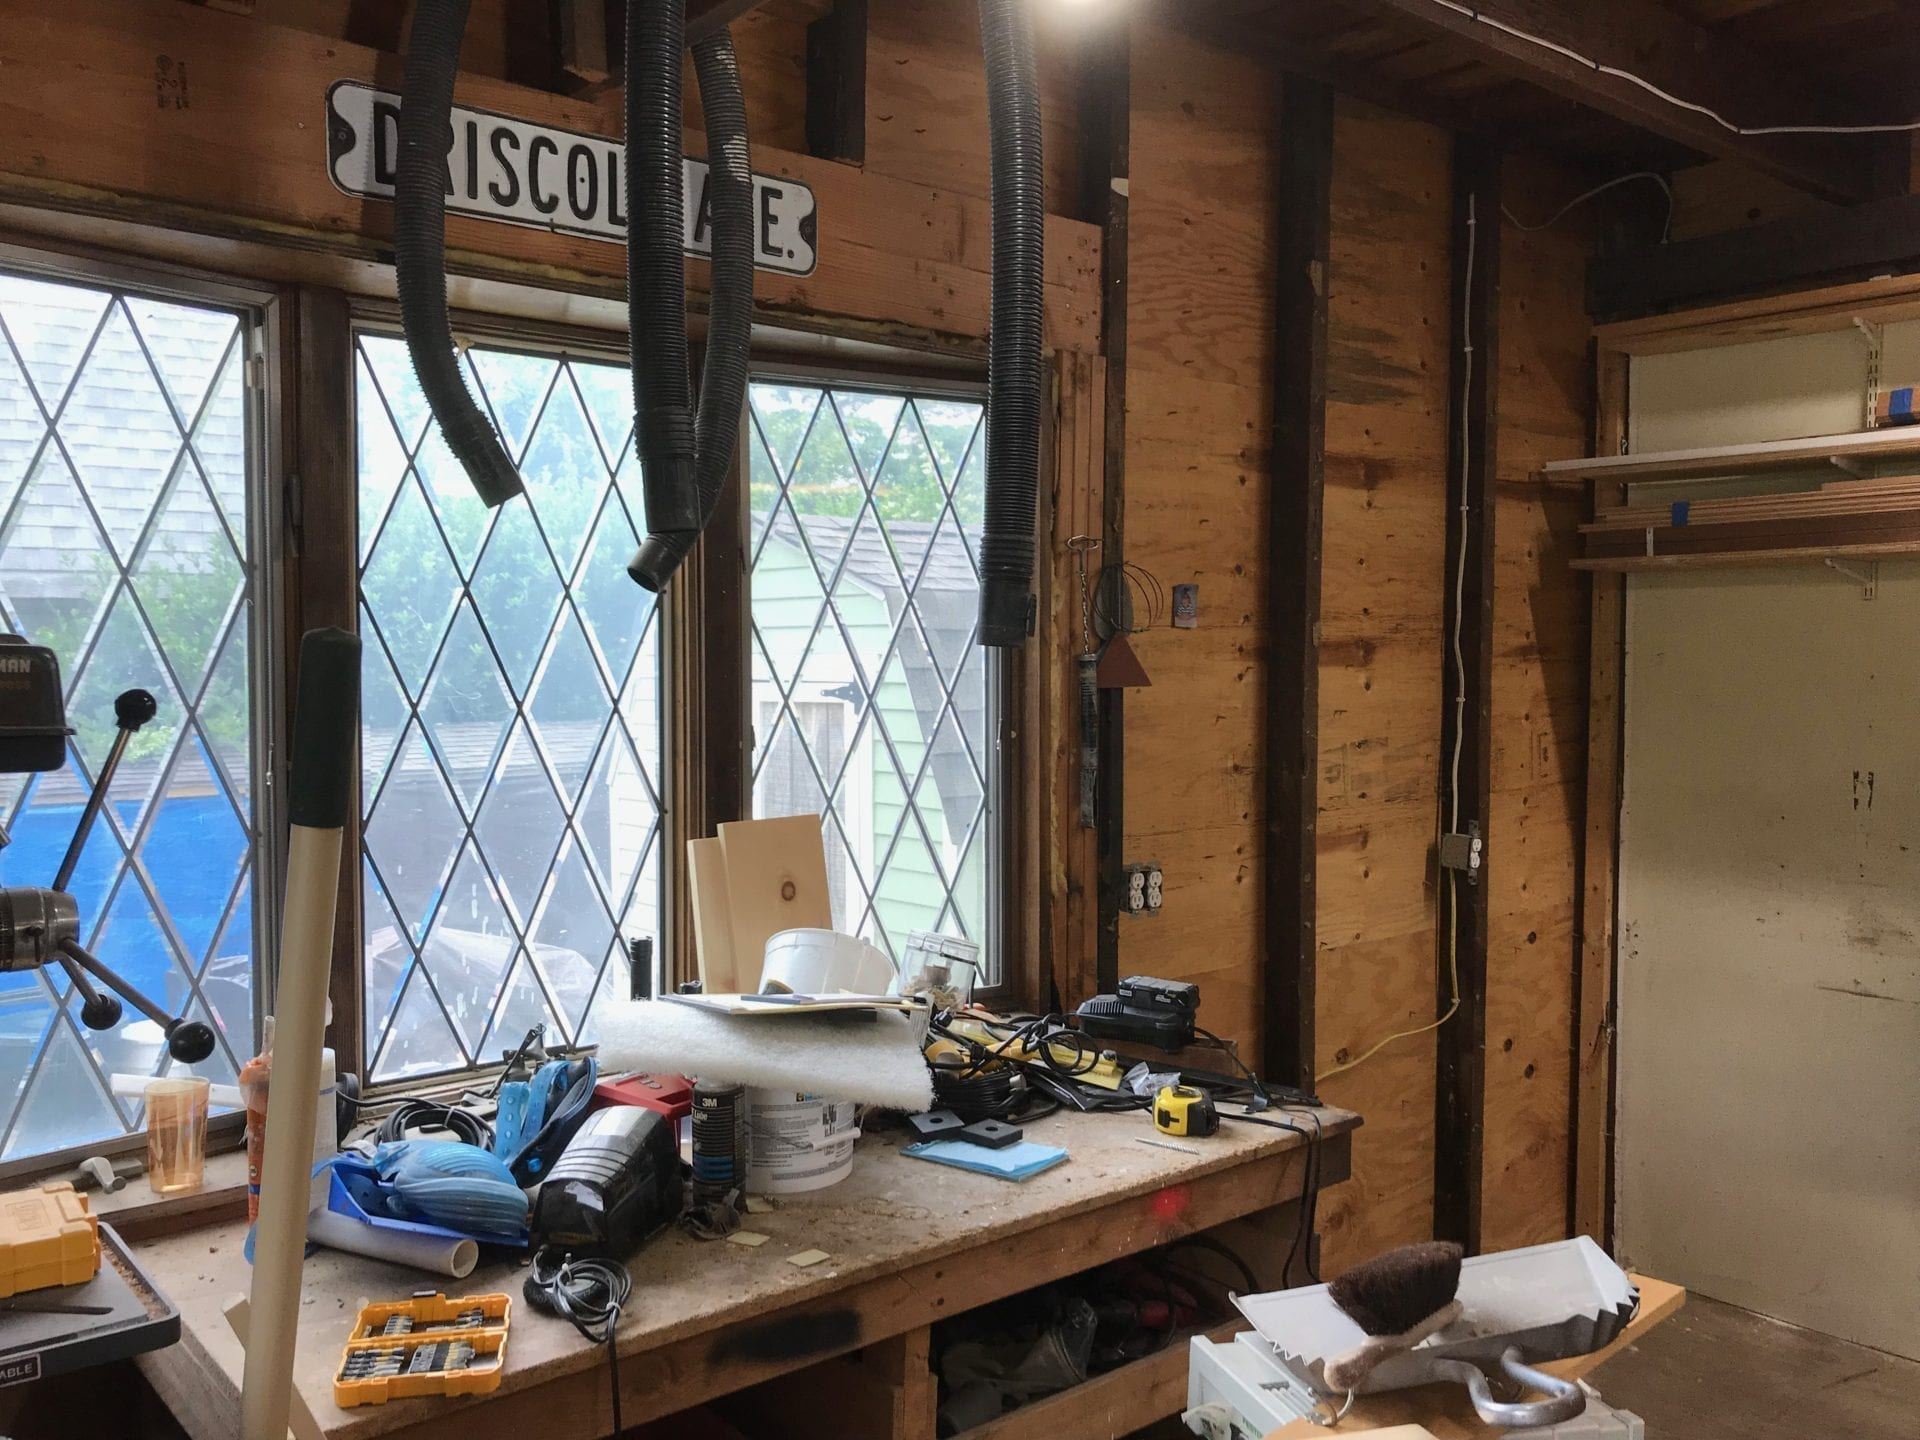 old work bench before updating workshop space